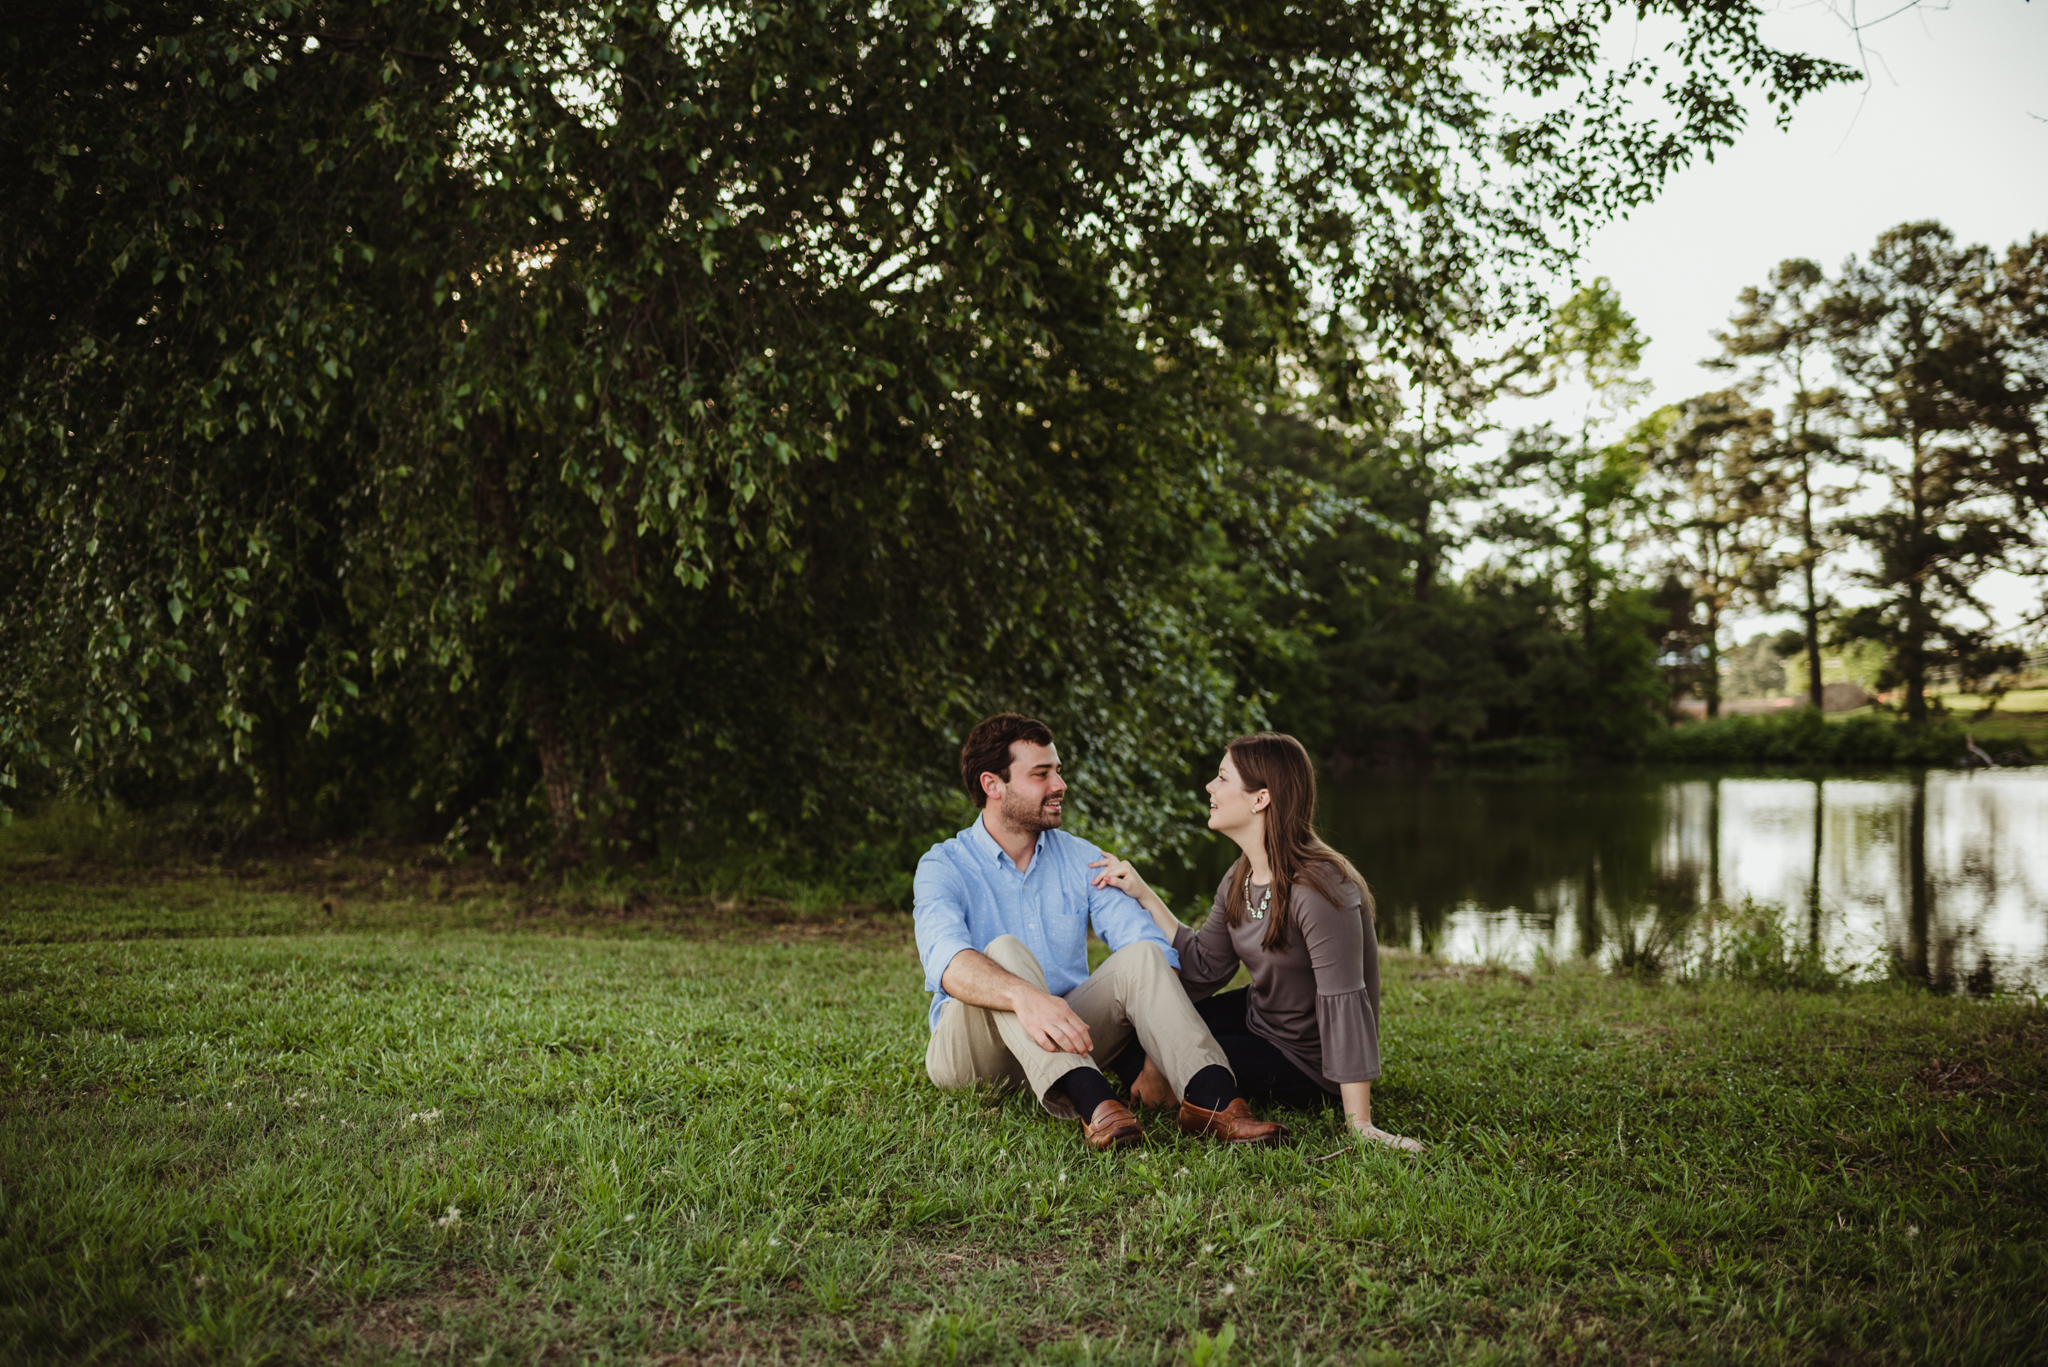 The bride and groom to be sit together for their engagement pictures with Rose Trail Images by the pond at their family farm in Benson, North Carolina.